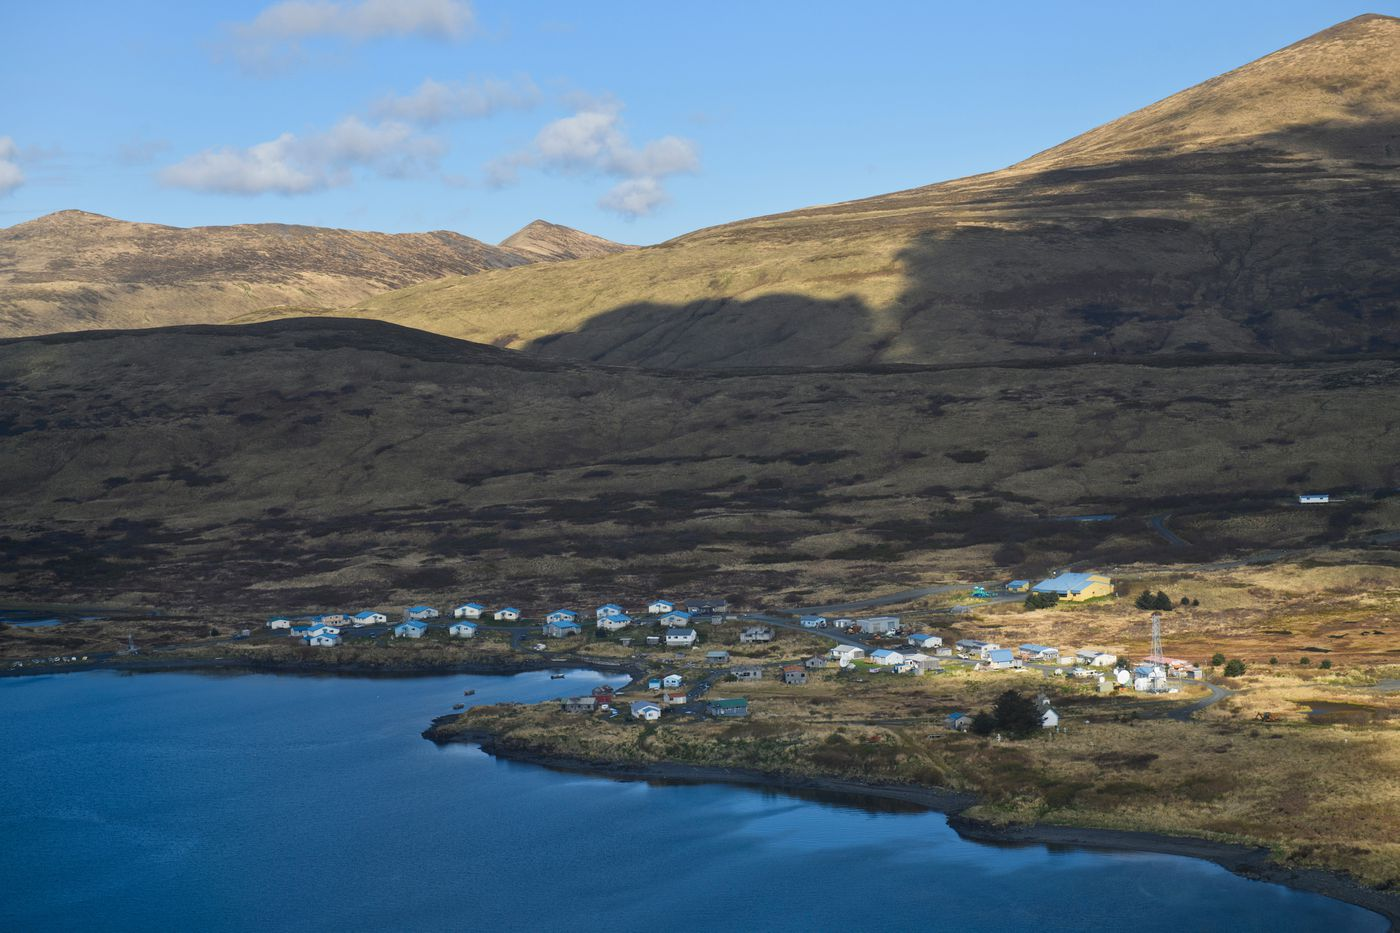 Akhiok, an Alutiiq village of about 52 people, is located on southwestern Kodiak Island, about 90 air miles from the city of Kodiak. (Marc Lester / ADN)